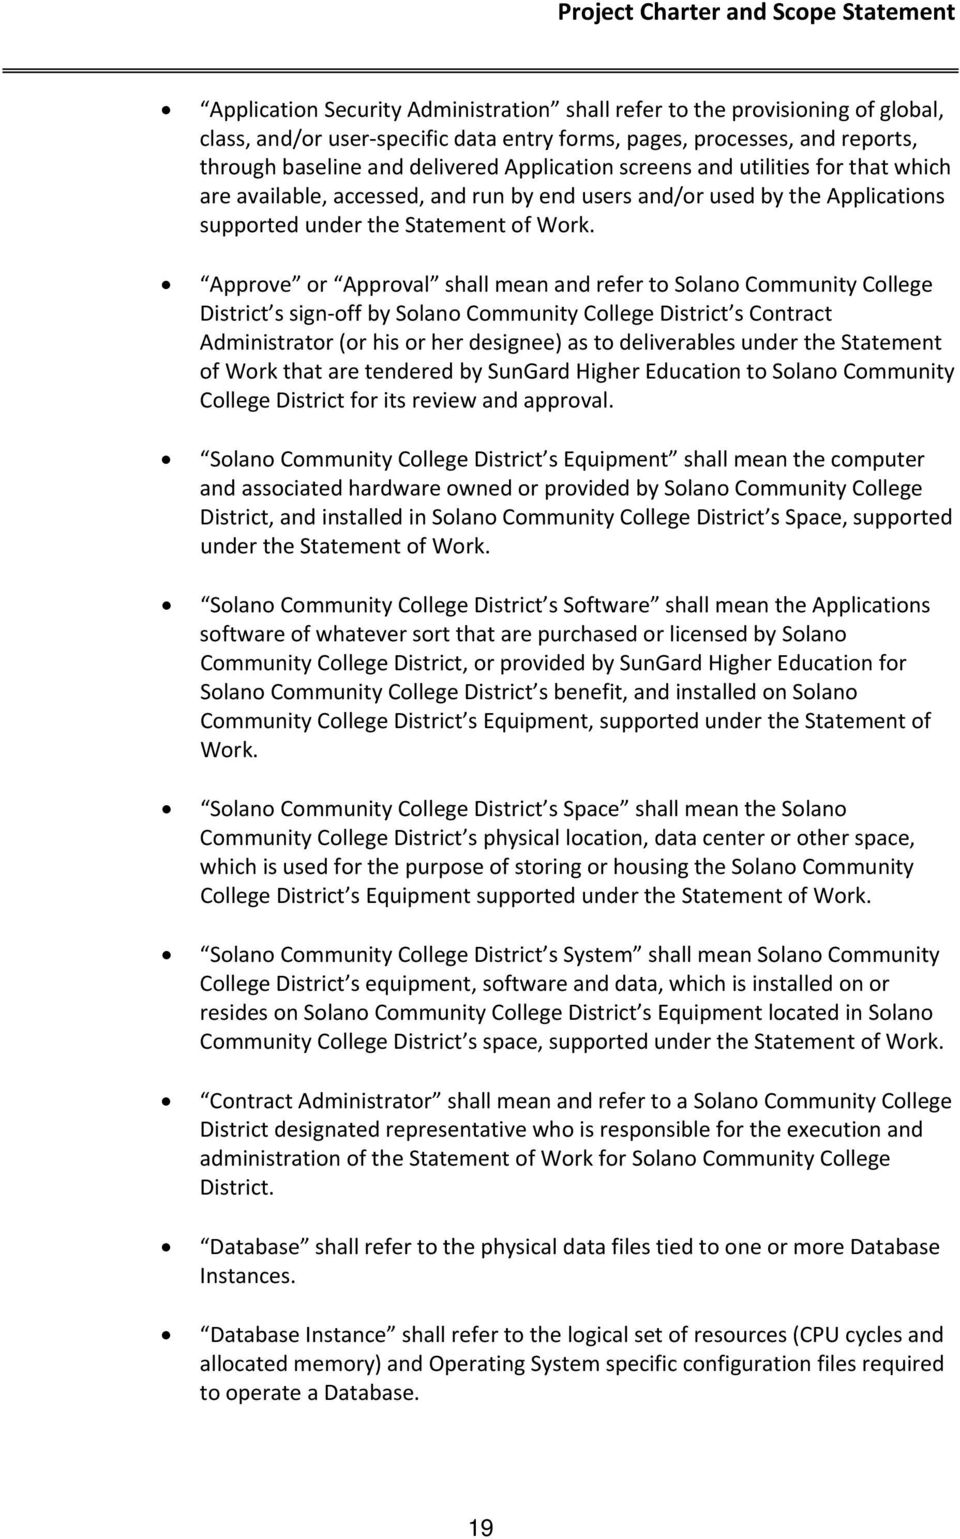 Approve or Approval shall mean and refer to Solano Community College District s sign off by Solano Community College District s Contract Administrator (or his or her designee) as to deliverables